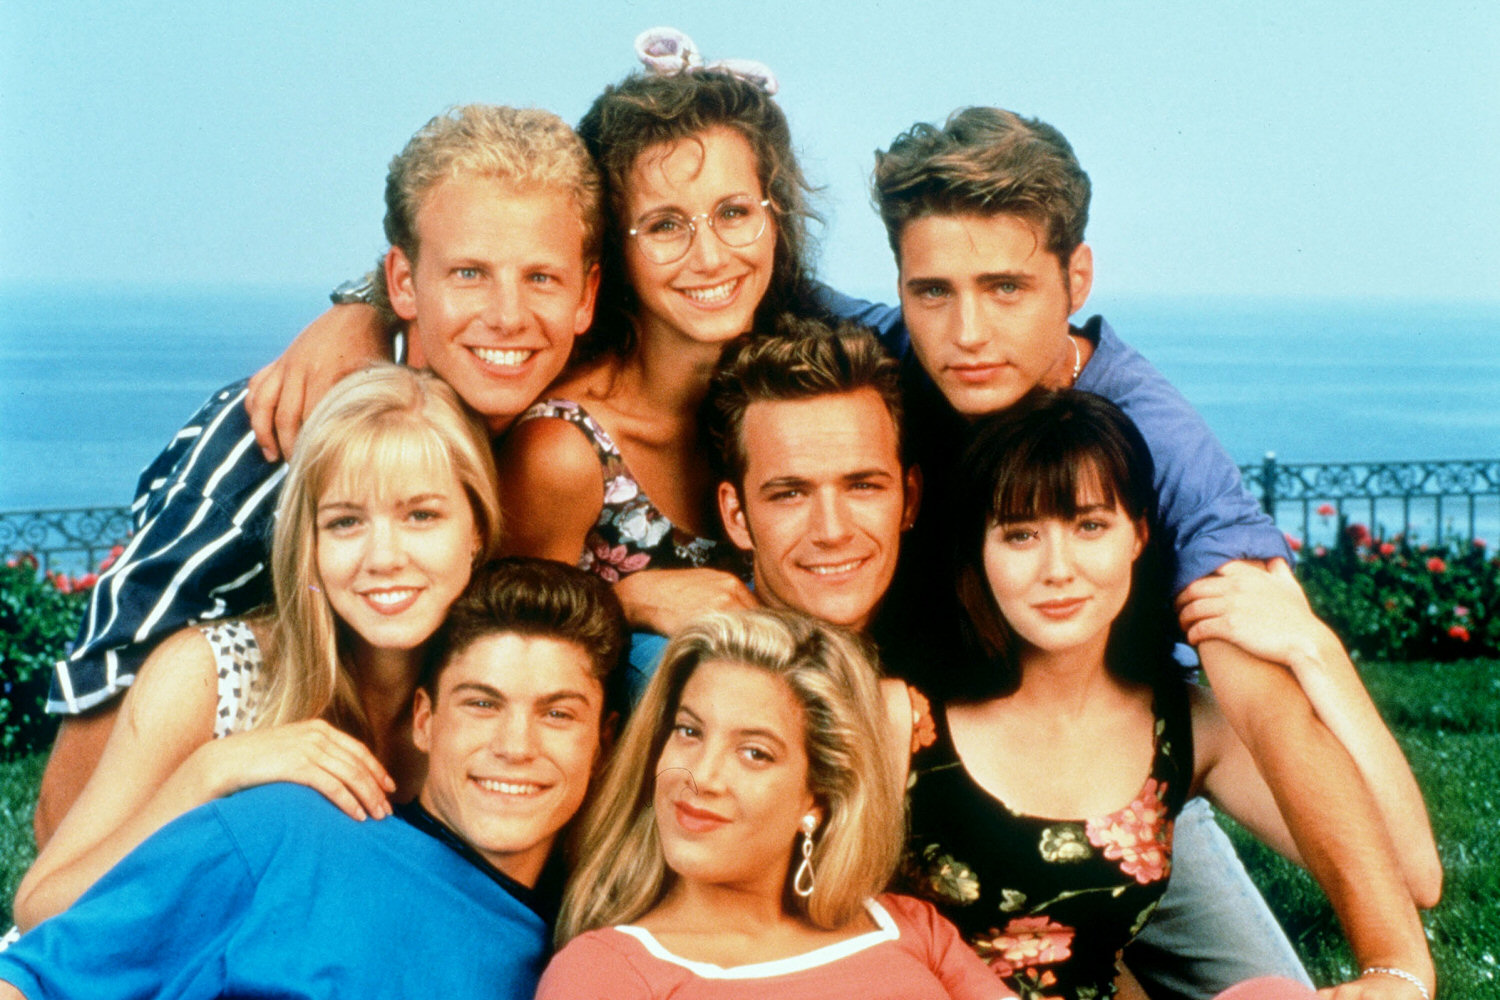 OMG, here's a first look at Lifetime's unauthorized '90210' and 'Melrose Place' movies